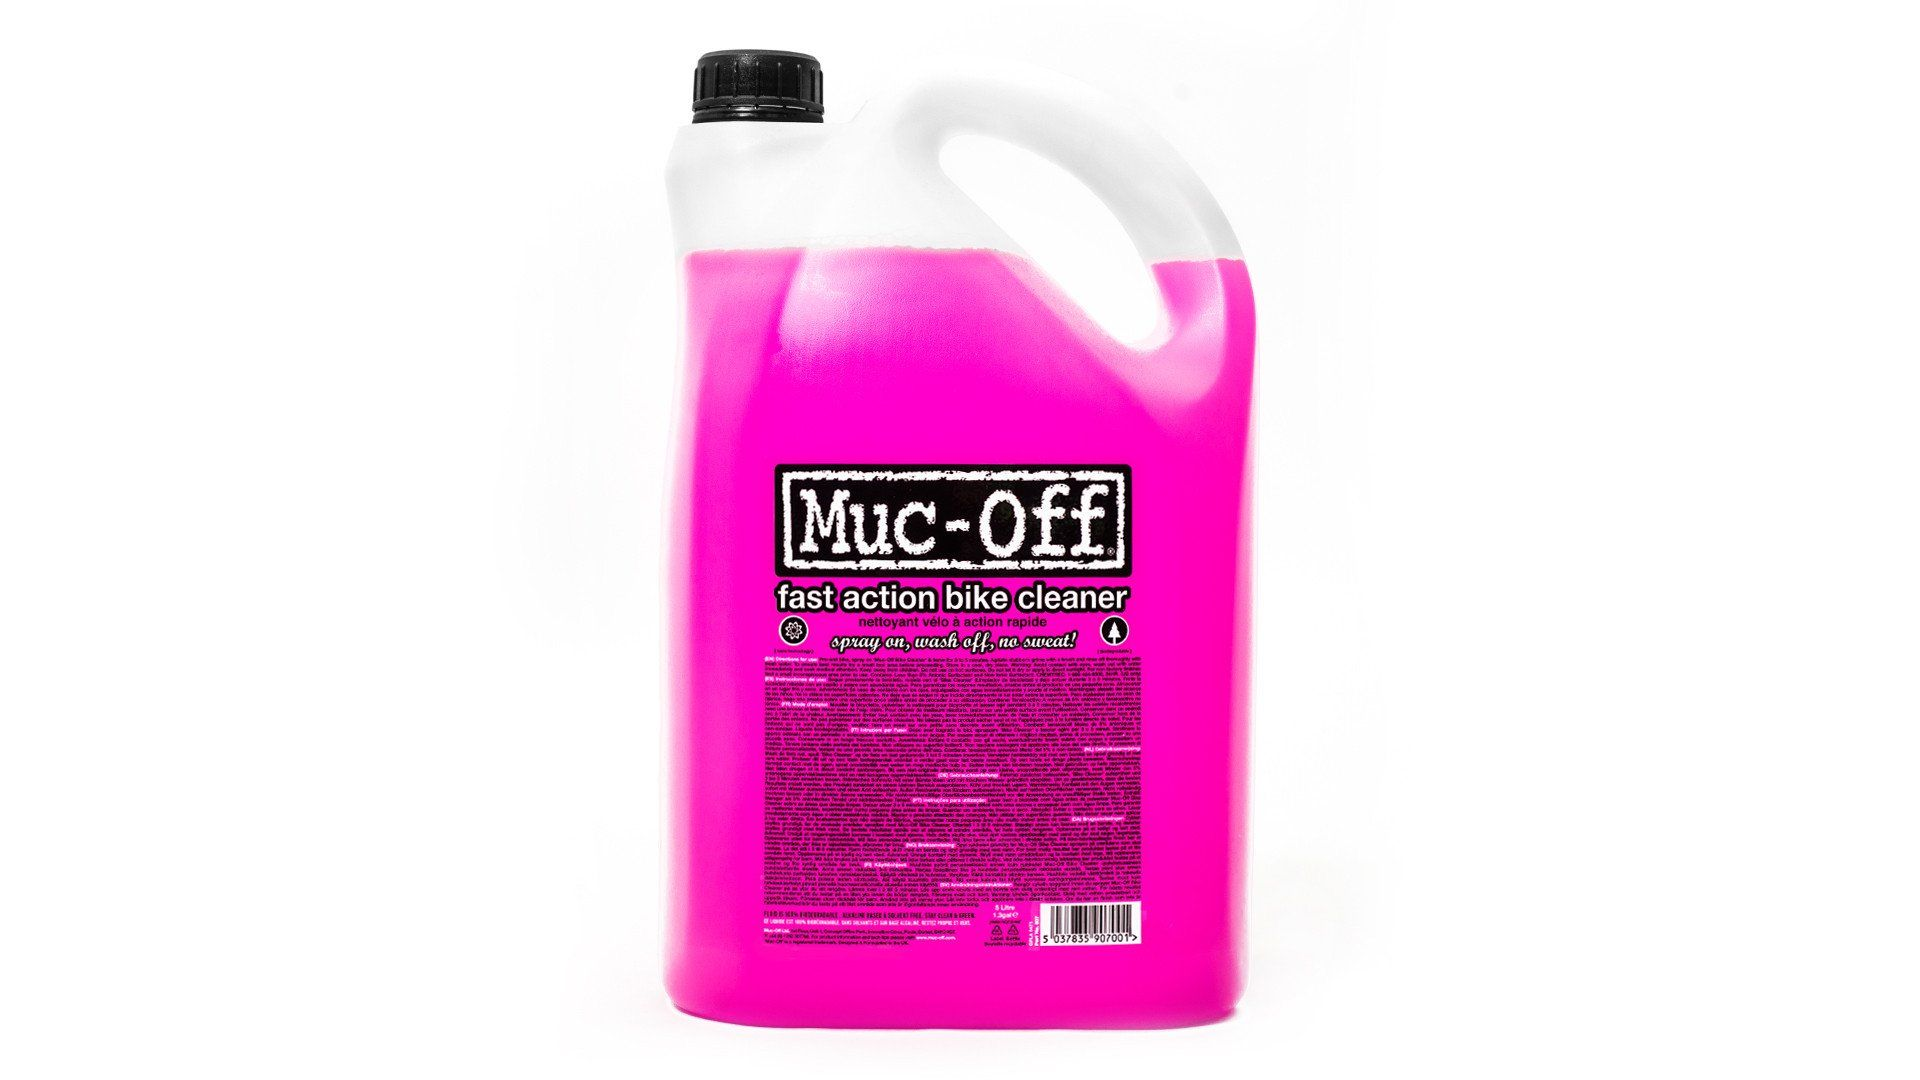 Nettoyant vélo Muc-Off Nano Tech Bike Cleaner 2,5 L